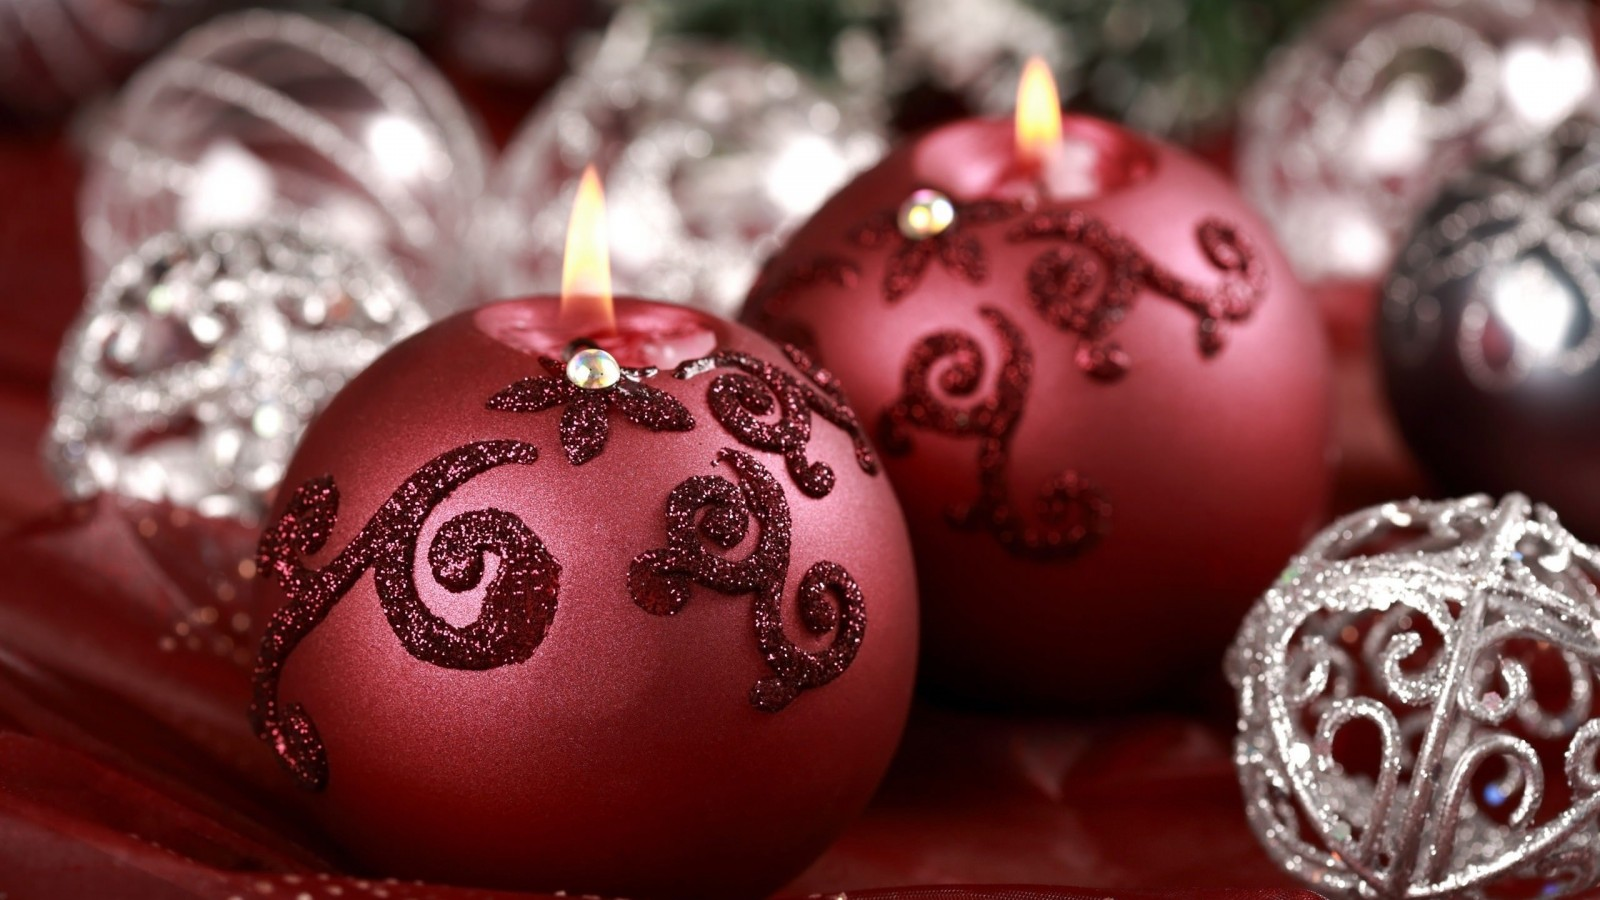 Red Christmas Ornament Ball Candles Wallpaper for Desktop 1600x900